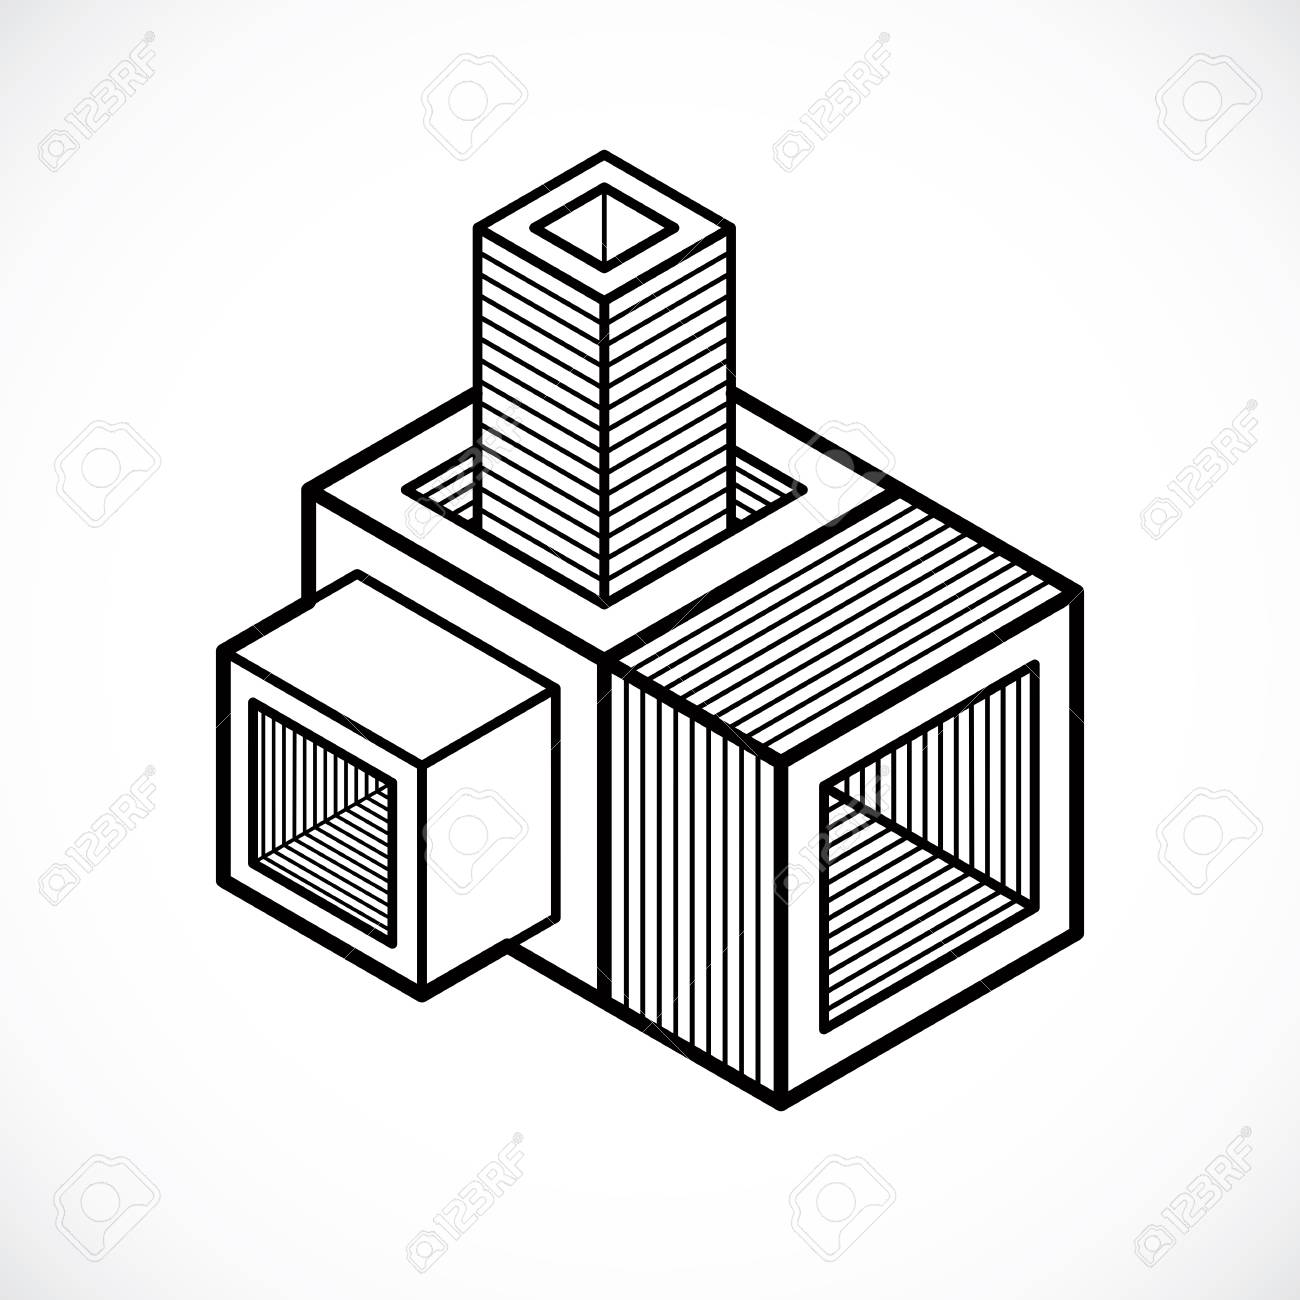 1300x1300 3d Design, Abstract Vector Cube Shape. Royalty Free Cliparts